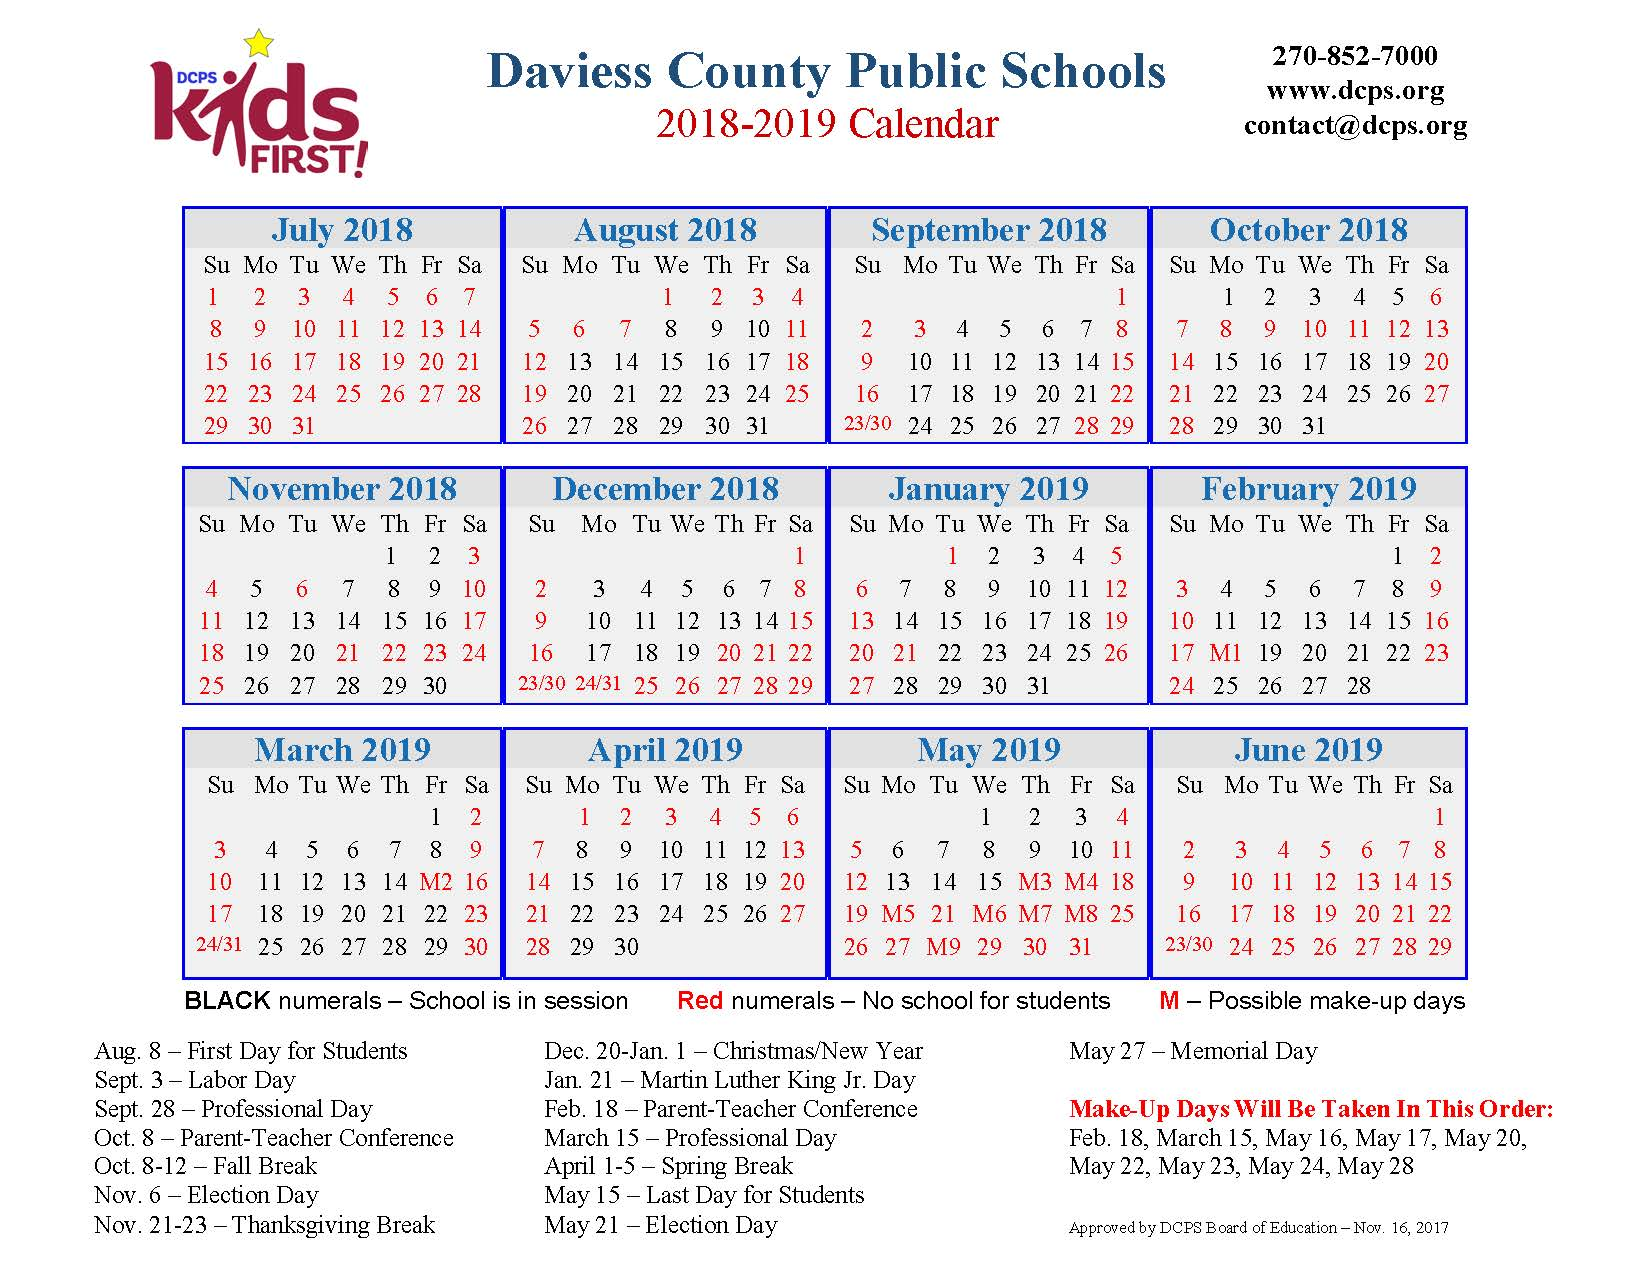 DCPS 2018-2019 instructional calendar